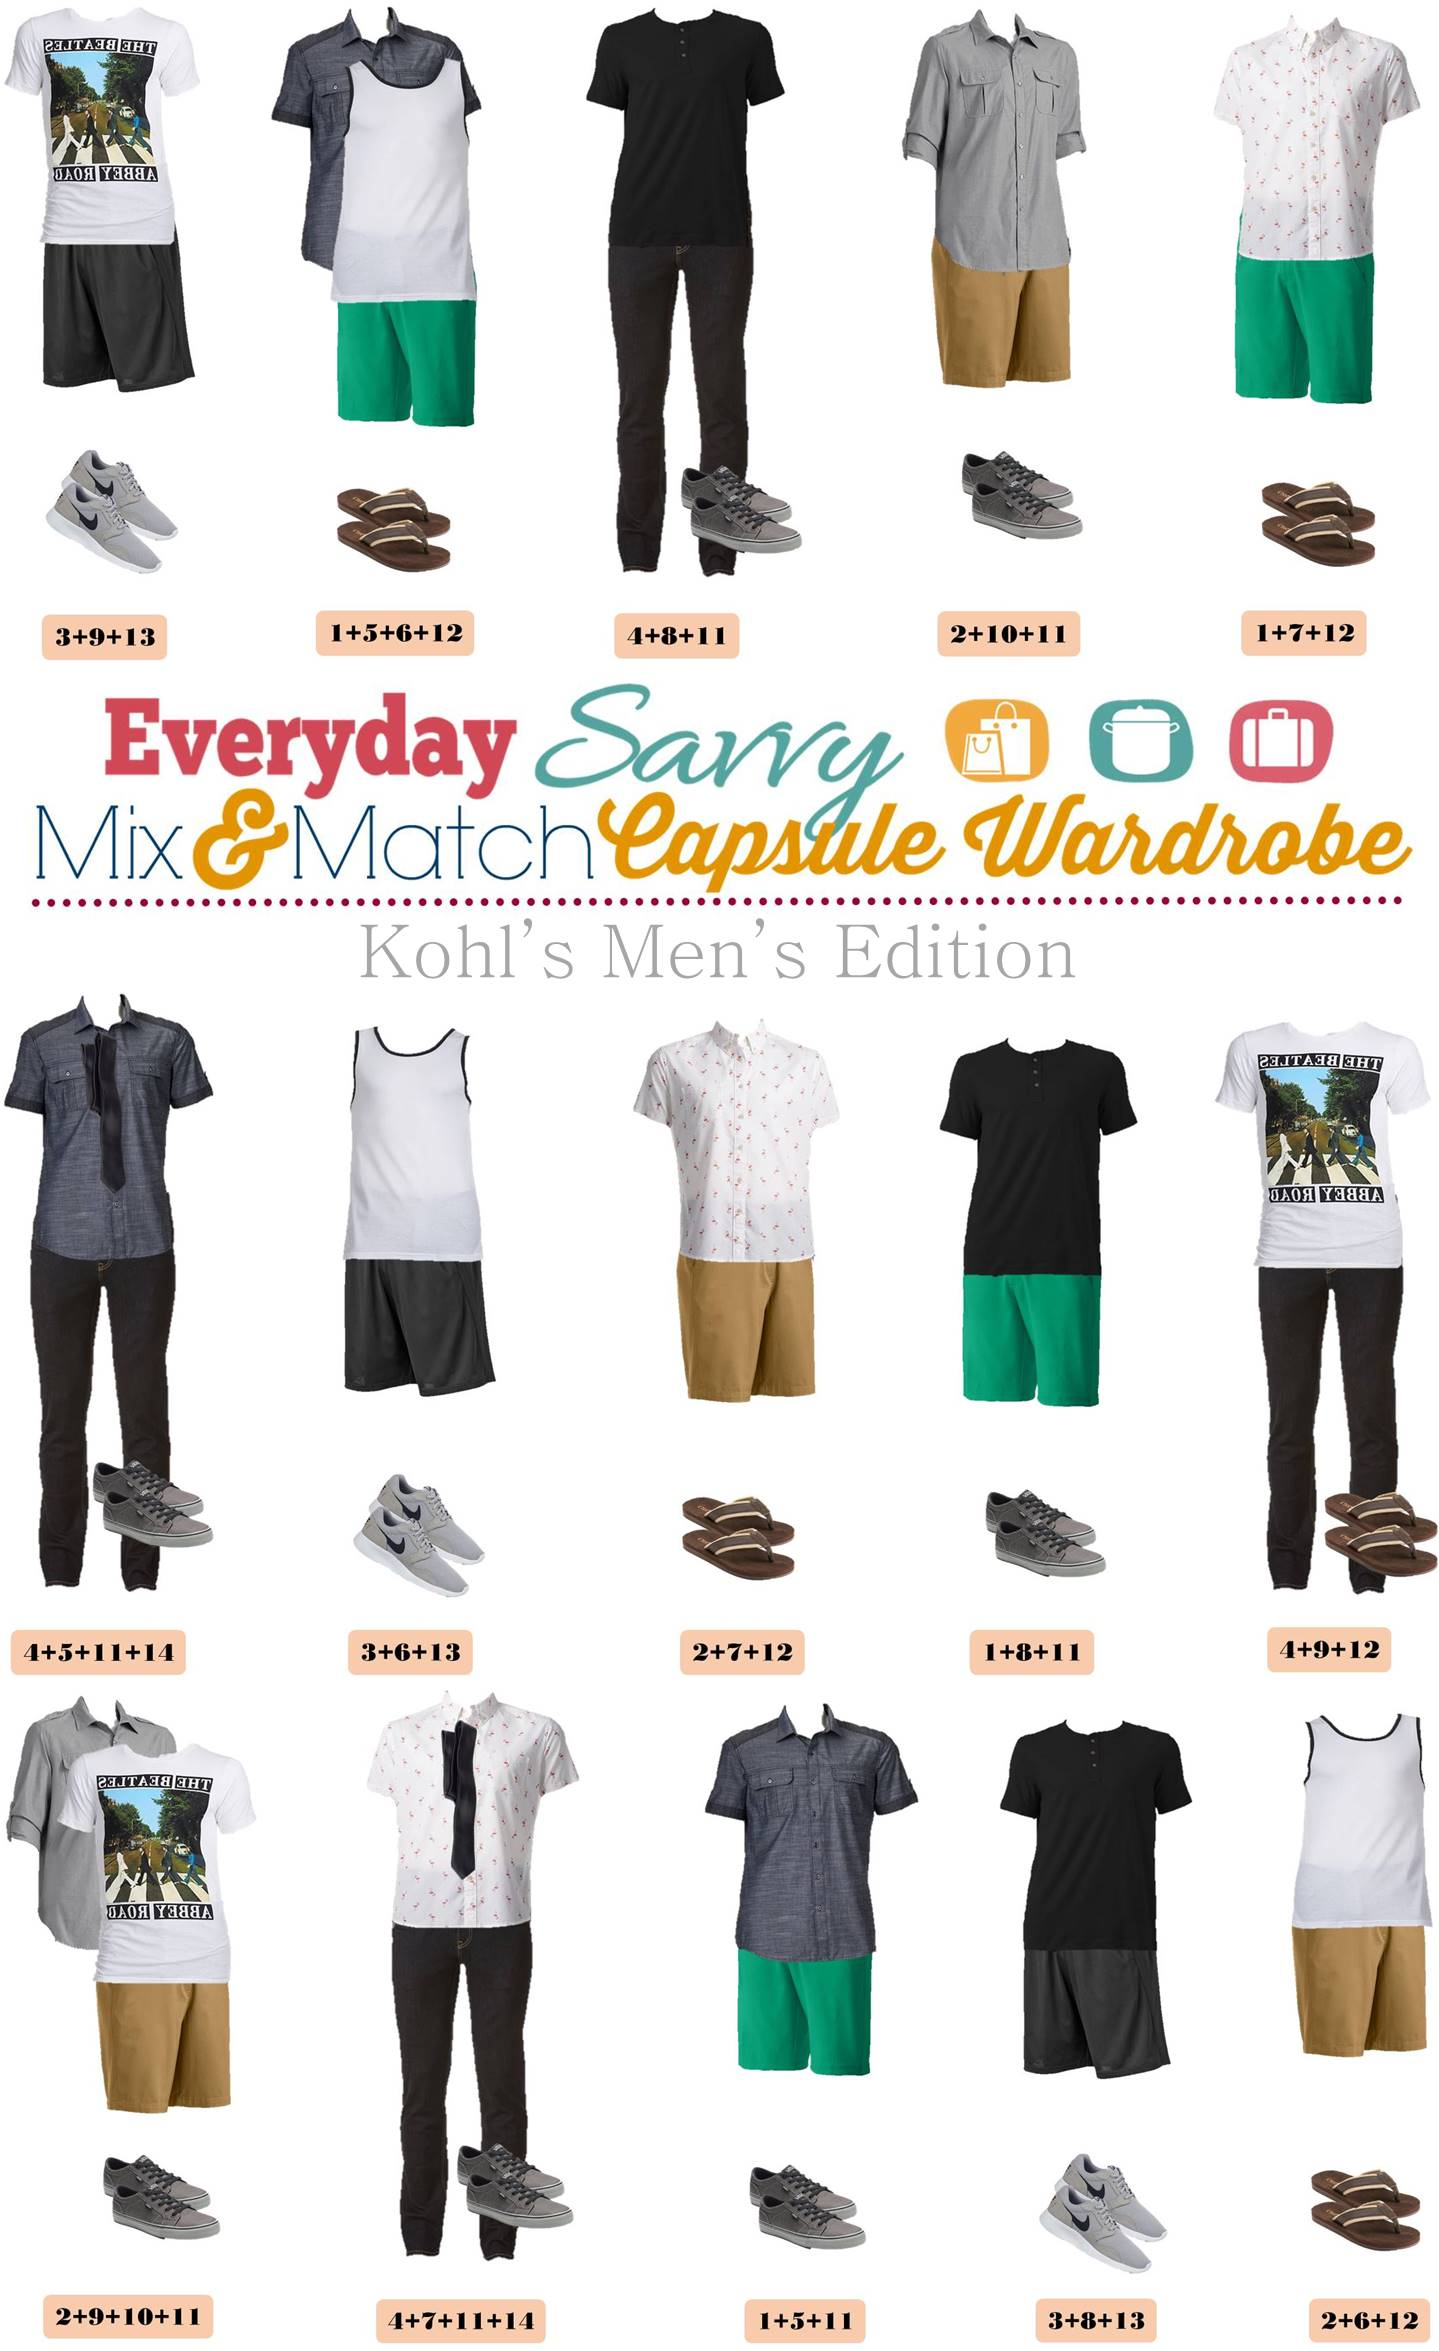 kohls men 39 s capsule wardrobe for spring summer. Black Bedroom Furniture Sets. Home Design Ideas